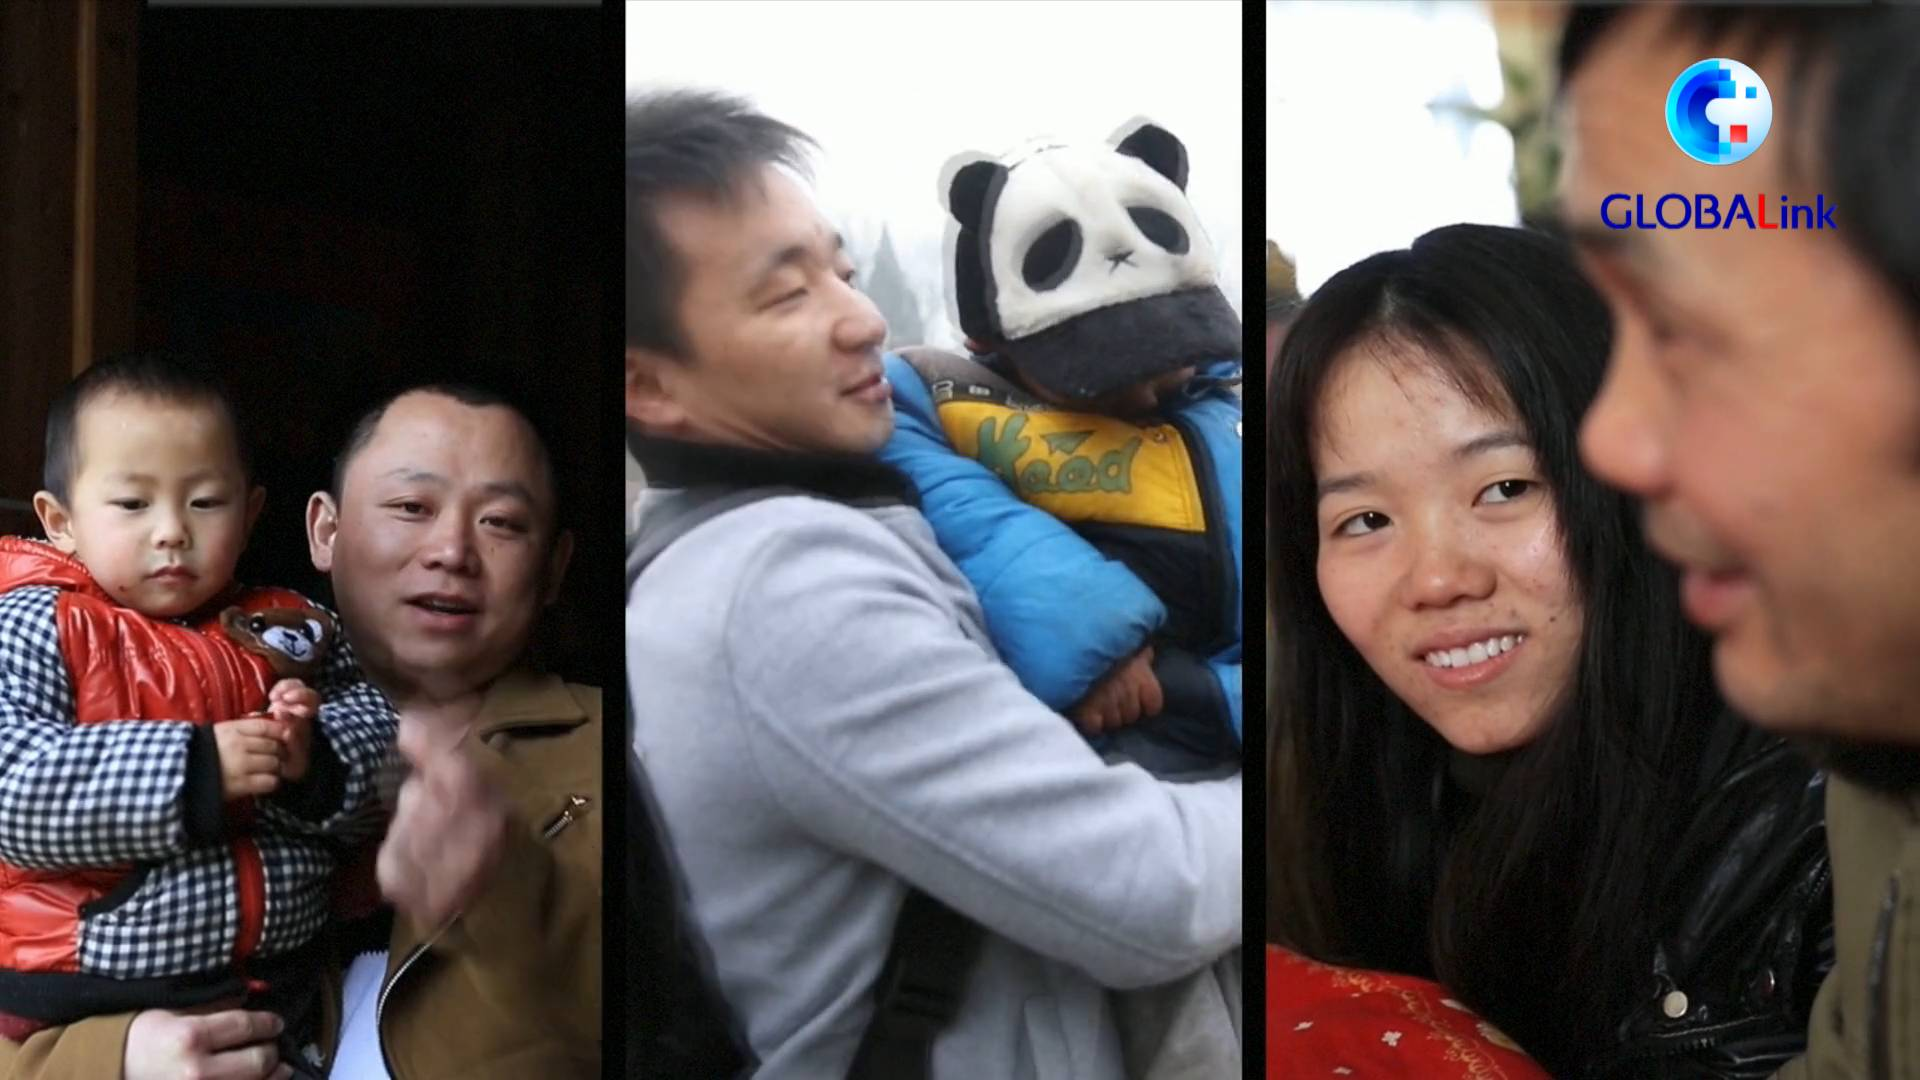 GLOBALink | Migrant workers' improved lives recorded in China's Hunan